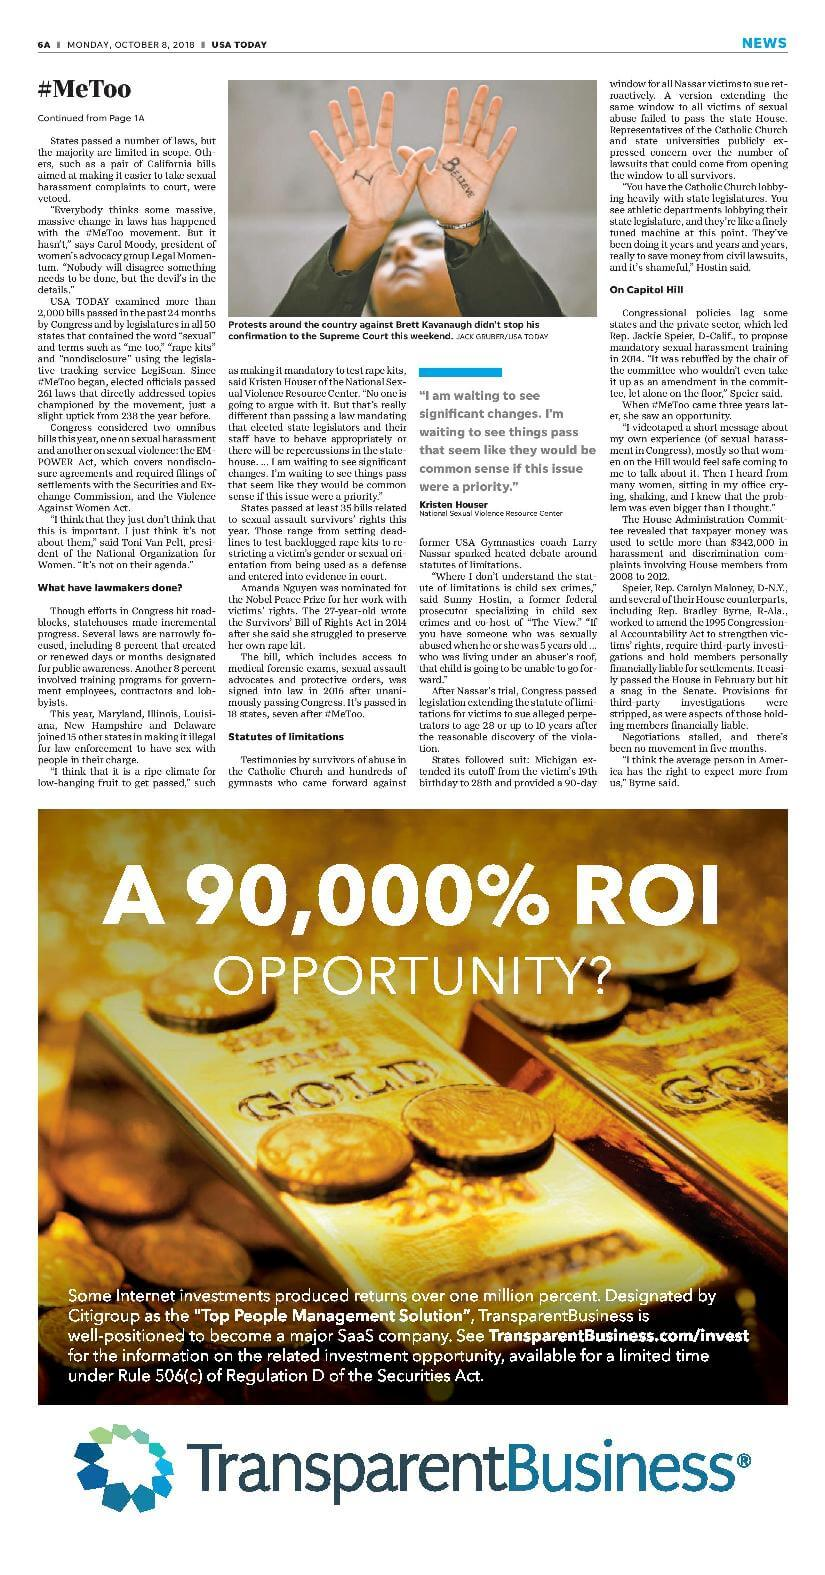 TransparentBusiness launches the 'ROI' advertising campaign in USA Today